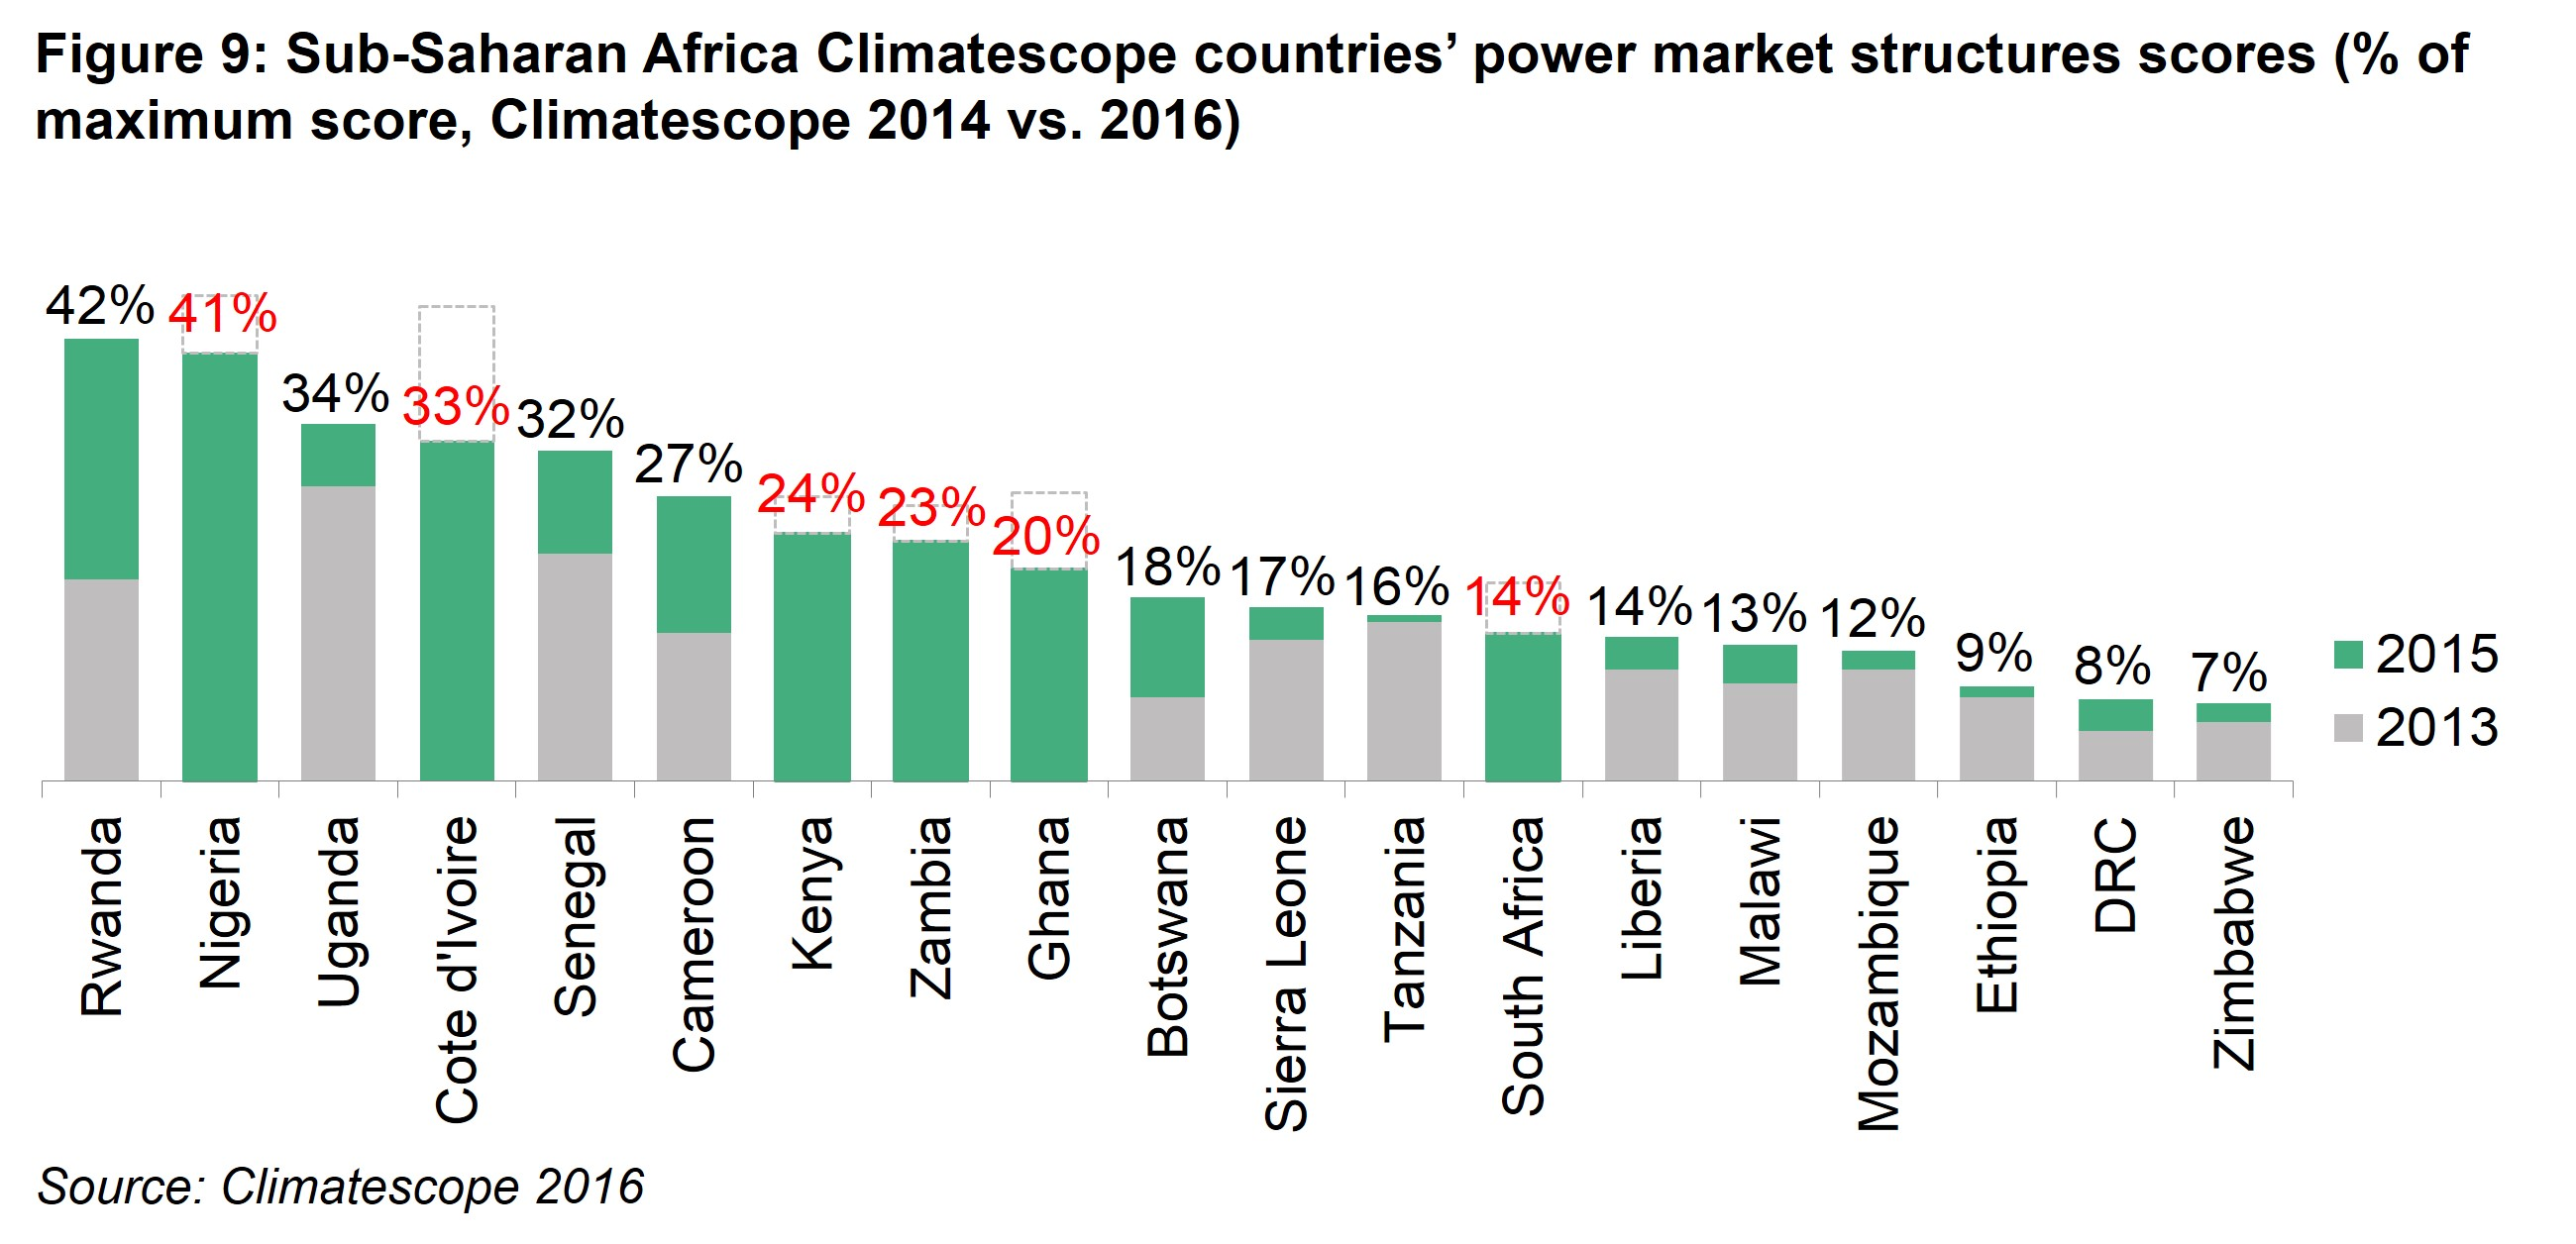 AM Fig 9 -Sub-Saharan Africa Climatescope nations power market structures scores (% of maximum score, Climatescope 2014 vs. 2016)